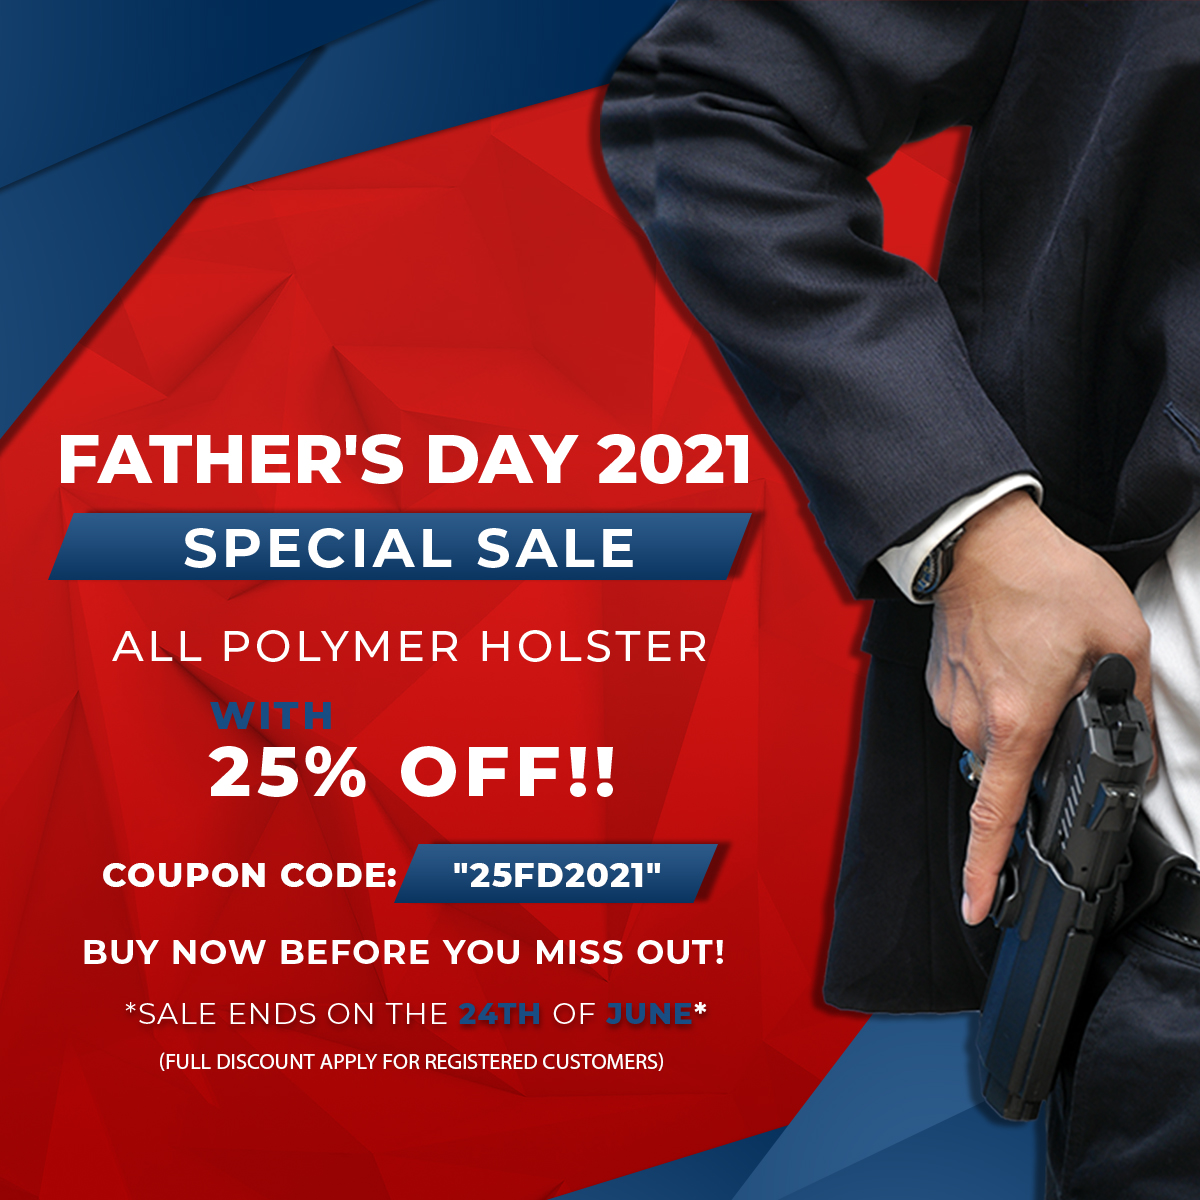 FATHERS DAY POLYMER HOLSTERS SPECIAL SALE